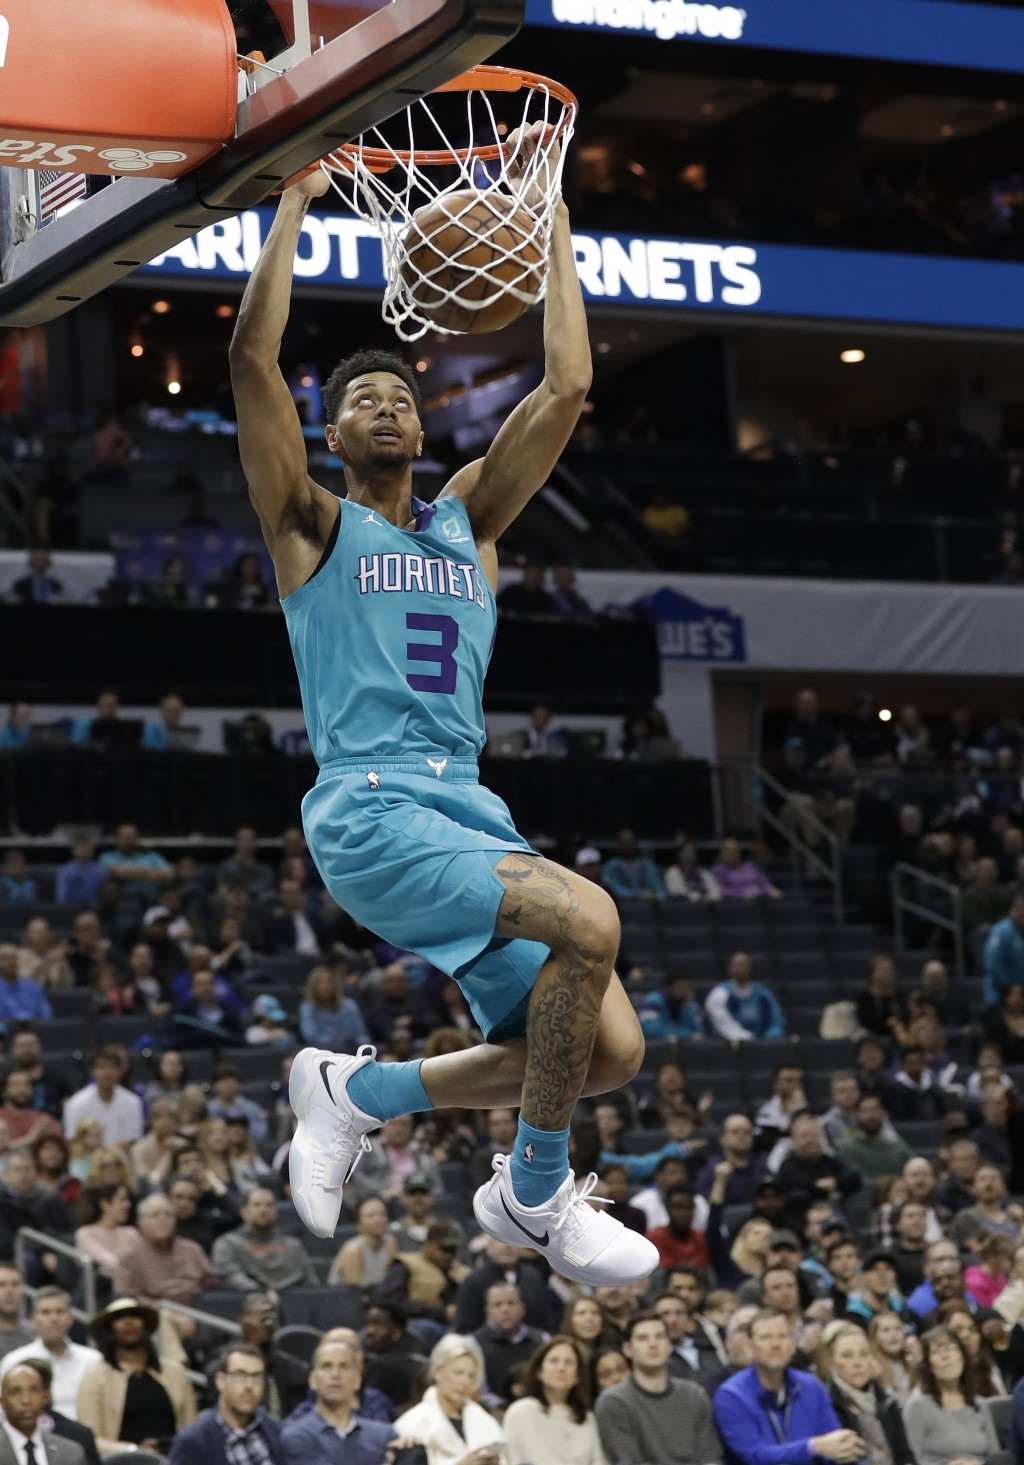 Charlotte Hornets guard Jeremy Lamb (3) dunks against the Washington Wizards during the first half of an NBA basketball game in Charlotte, N.C., Frida